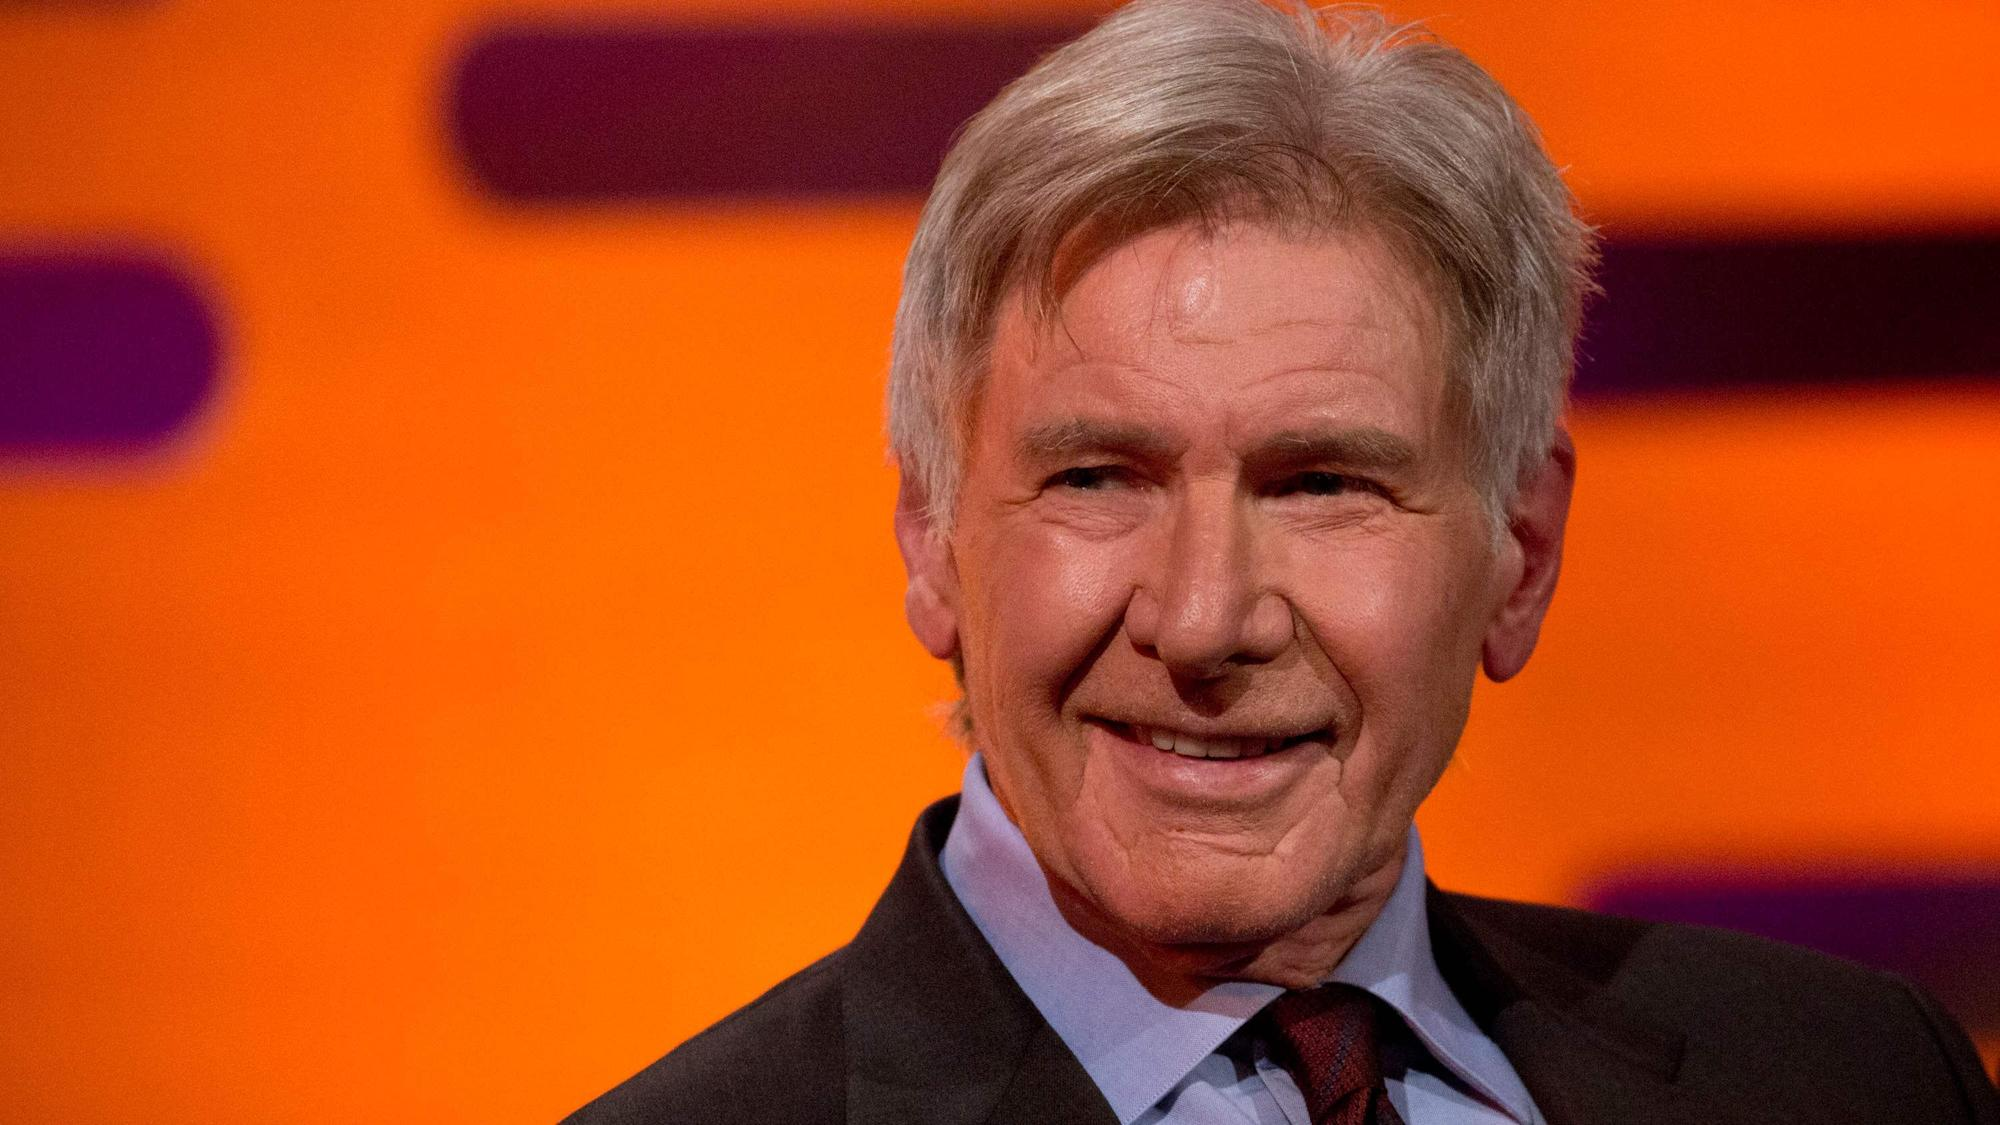 Harrison Ford reads out critical studio notes for Blade Runner at Oscars